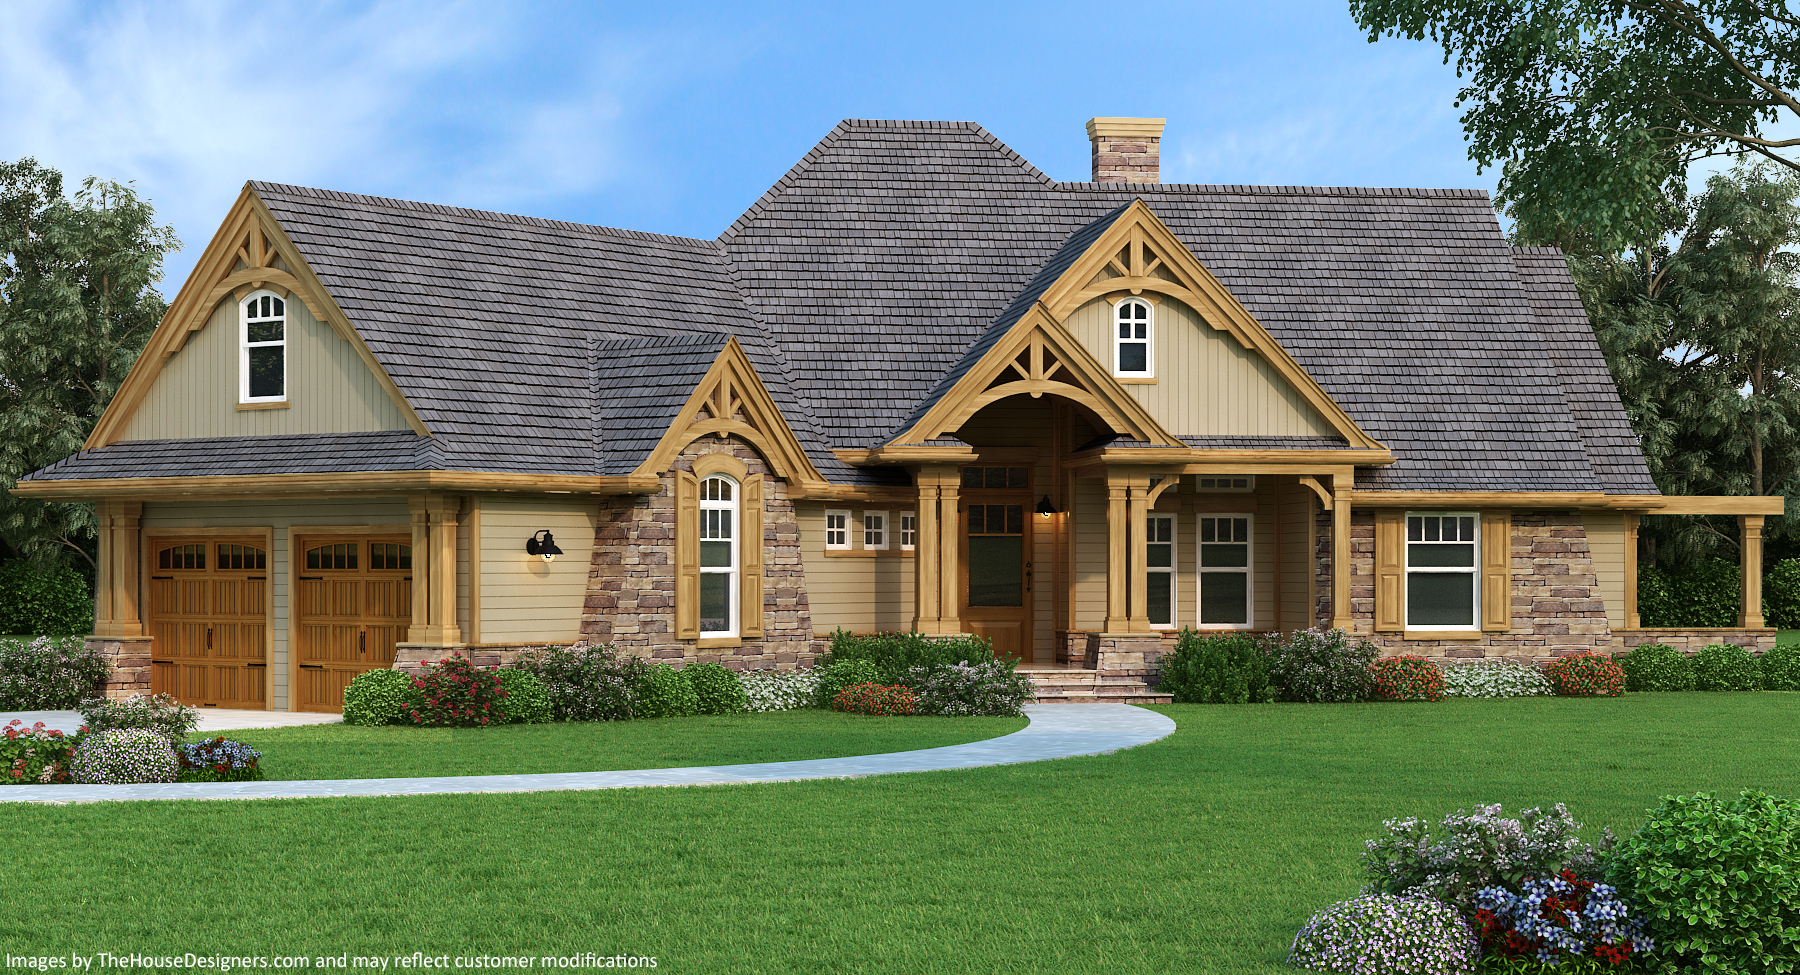 best farmhouse plans the house designers showcases popular house plan in affordable and luxury build options 8334